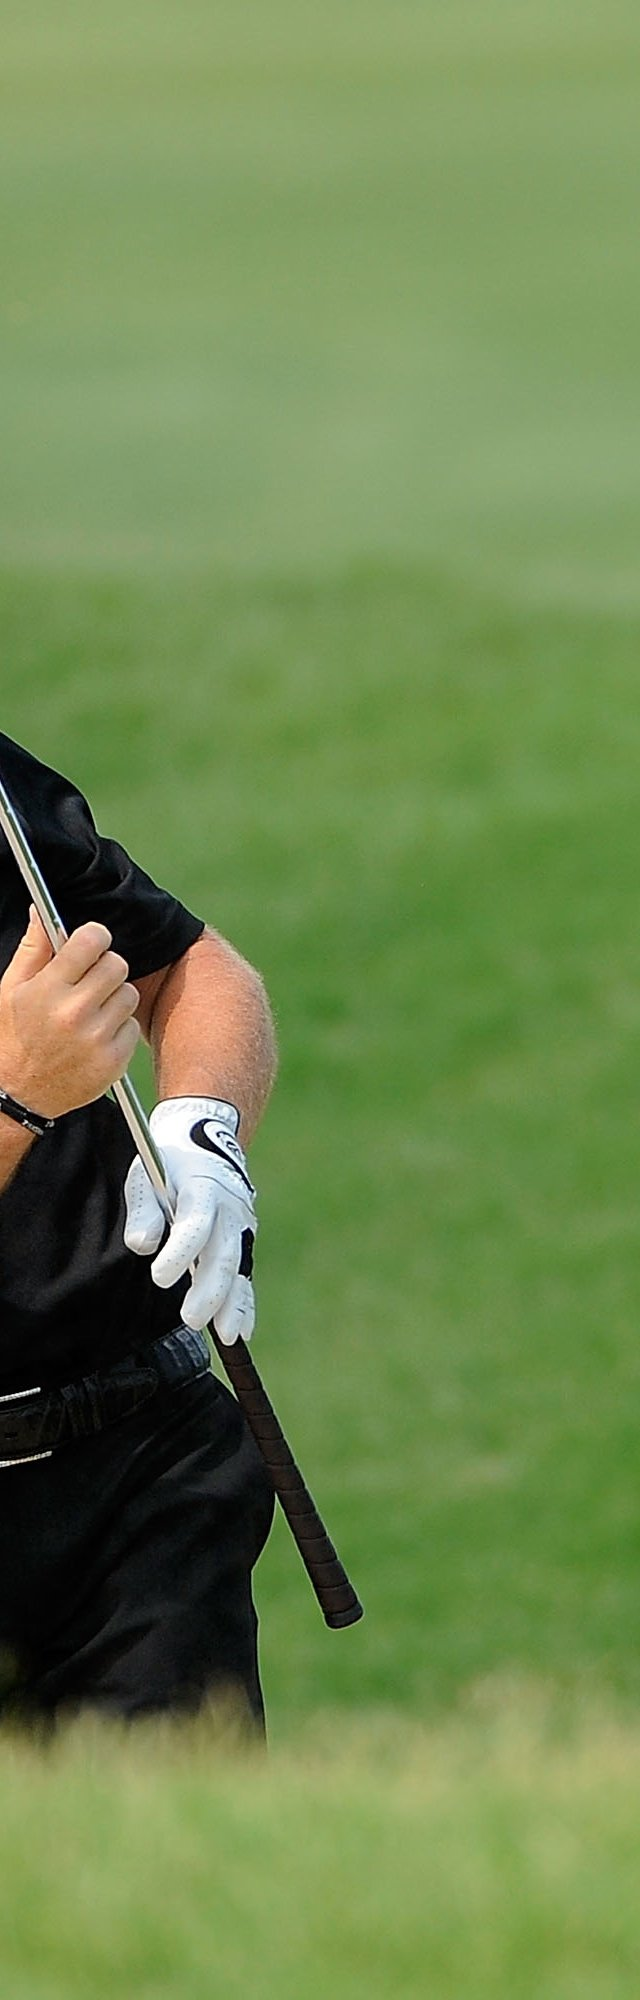 Alex Cejka of Germany reacts to a shot on the third hole during the final round of THE PLAYERS Championship.